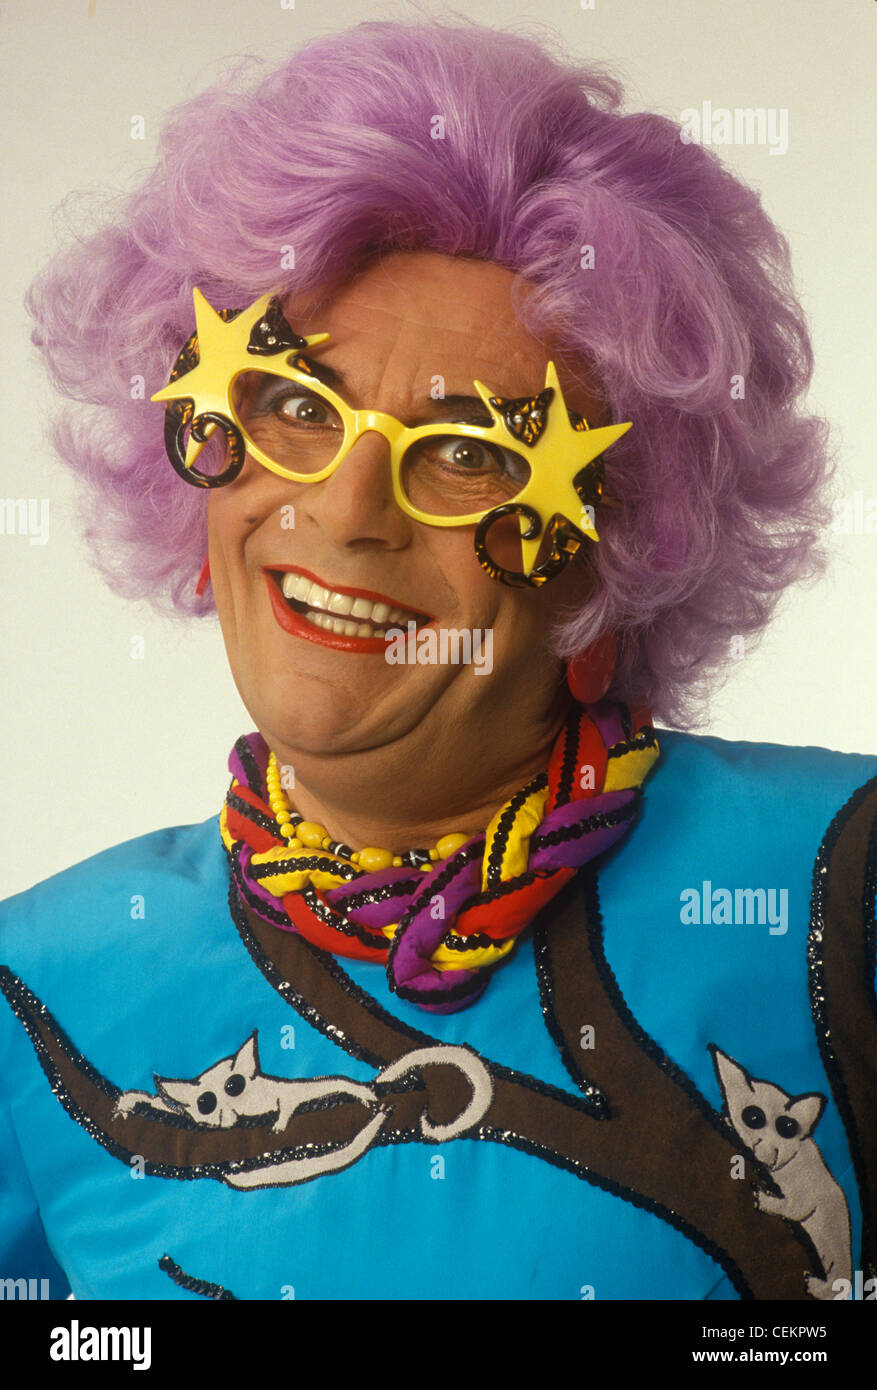 Dame Edna Barry Humphries moyenne. HOMER SYKES ARCHIVE Photo Stock